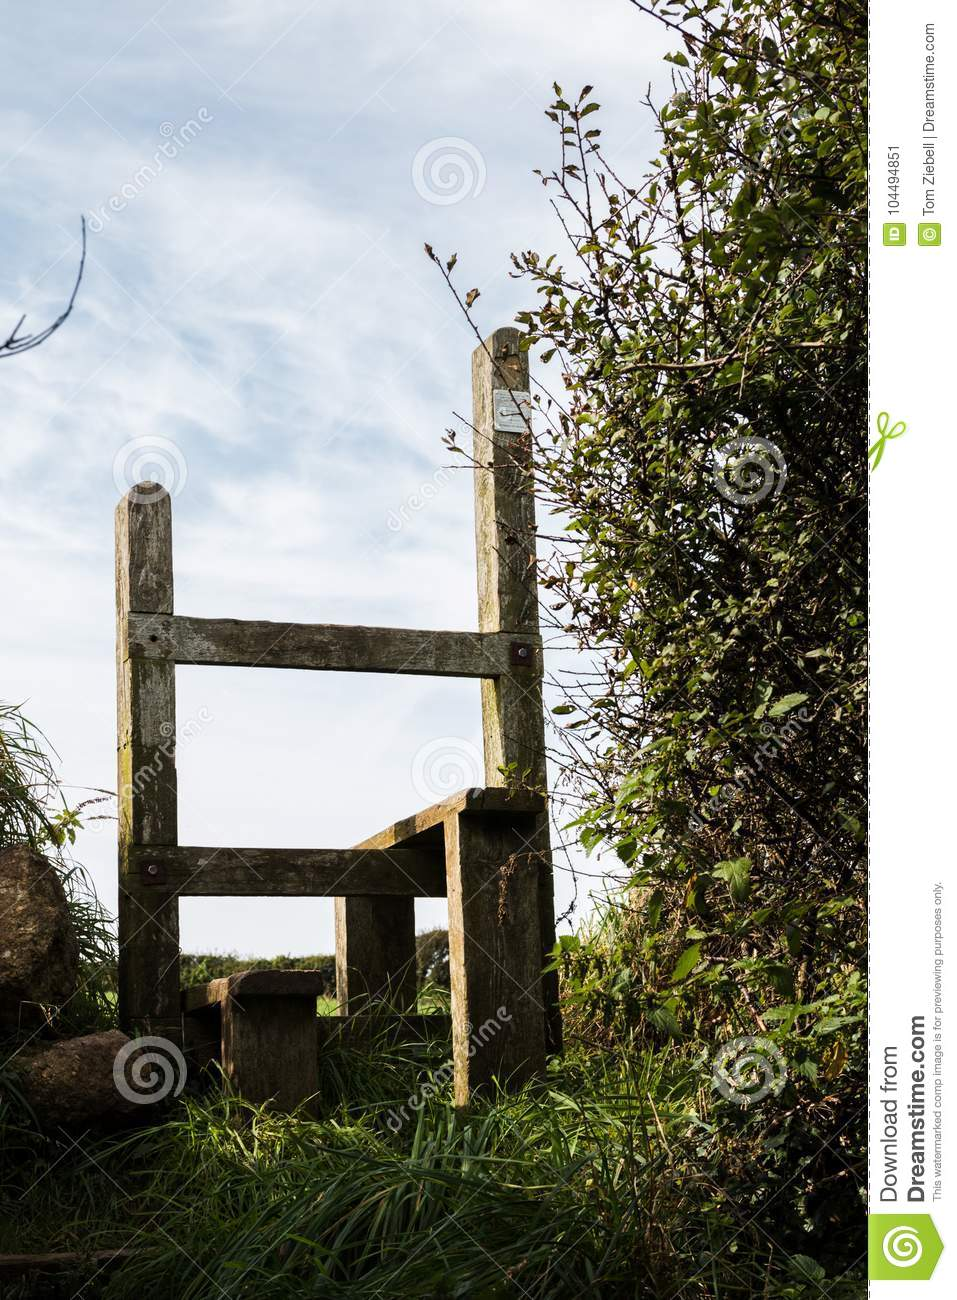 An English Country Stile Stock Image Image Of Pasture 104494851